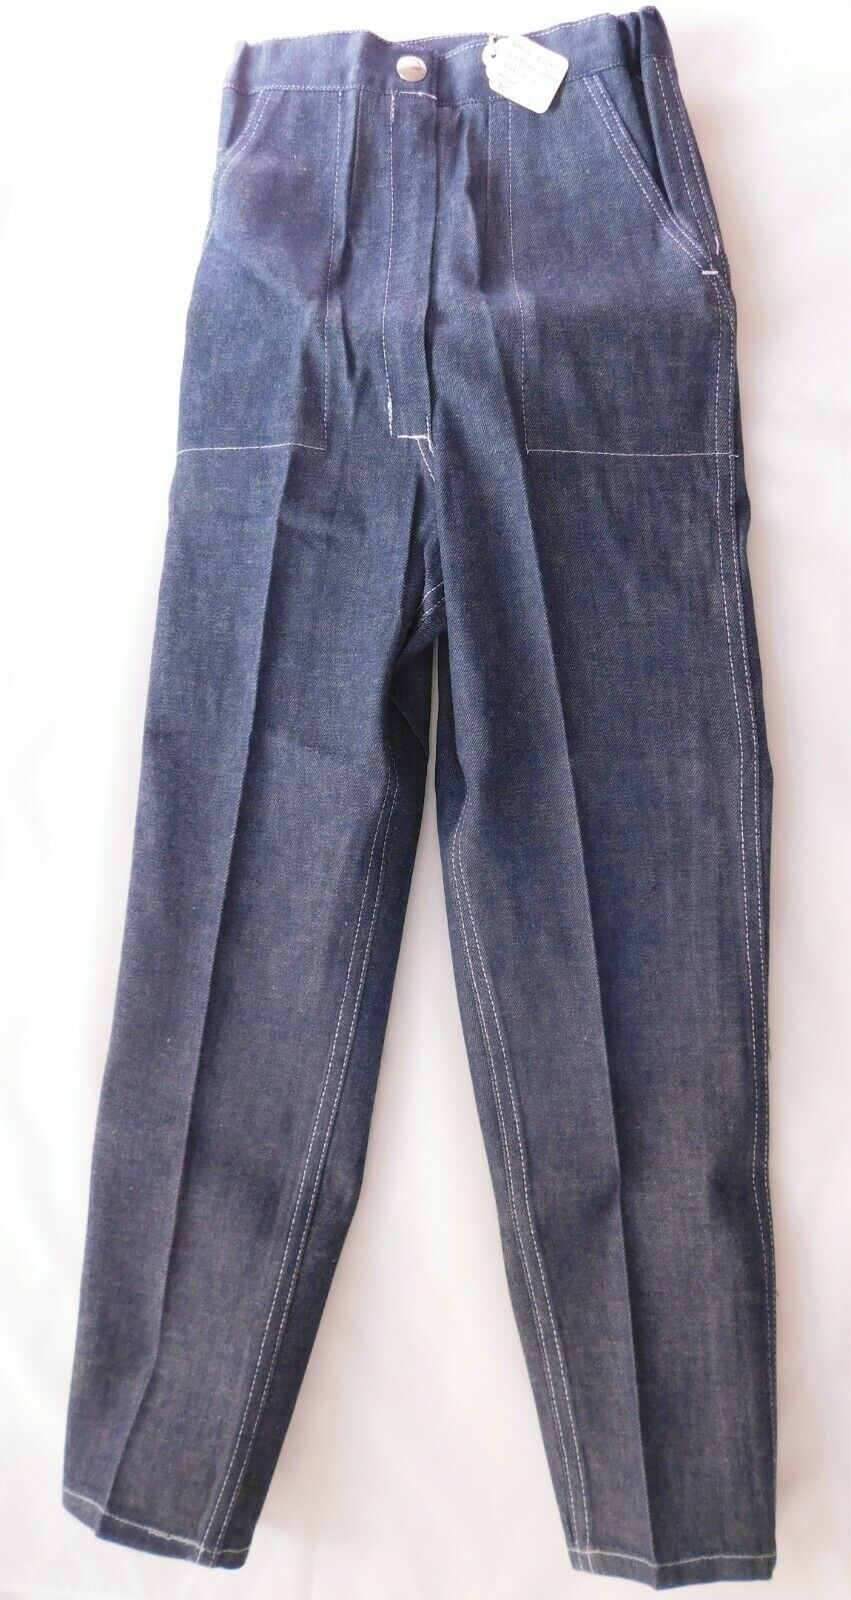 Vintage girls blue jeans 1960s UNUSED Age 10 years childrens trousers Ladybird